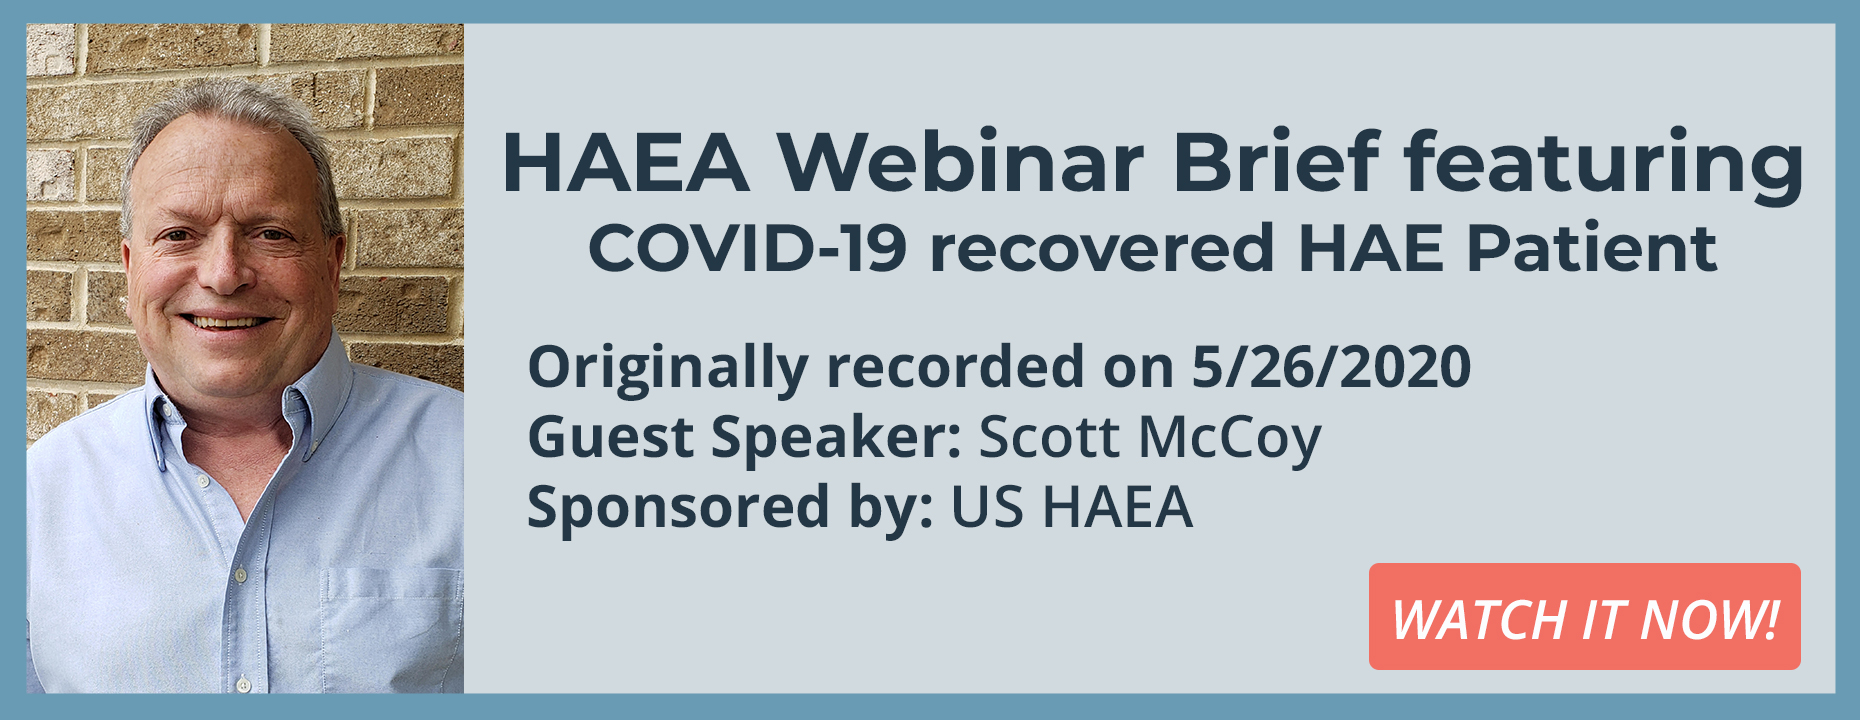 Special HAEA Webinar Brief featuring COVID-19 recovered HAE Patient